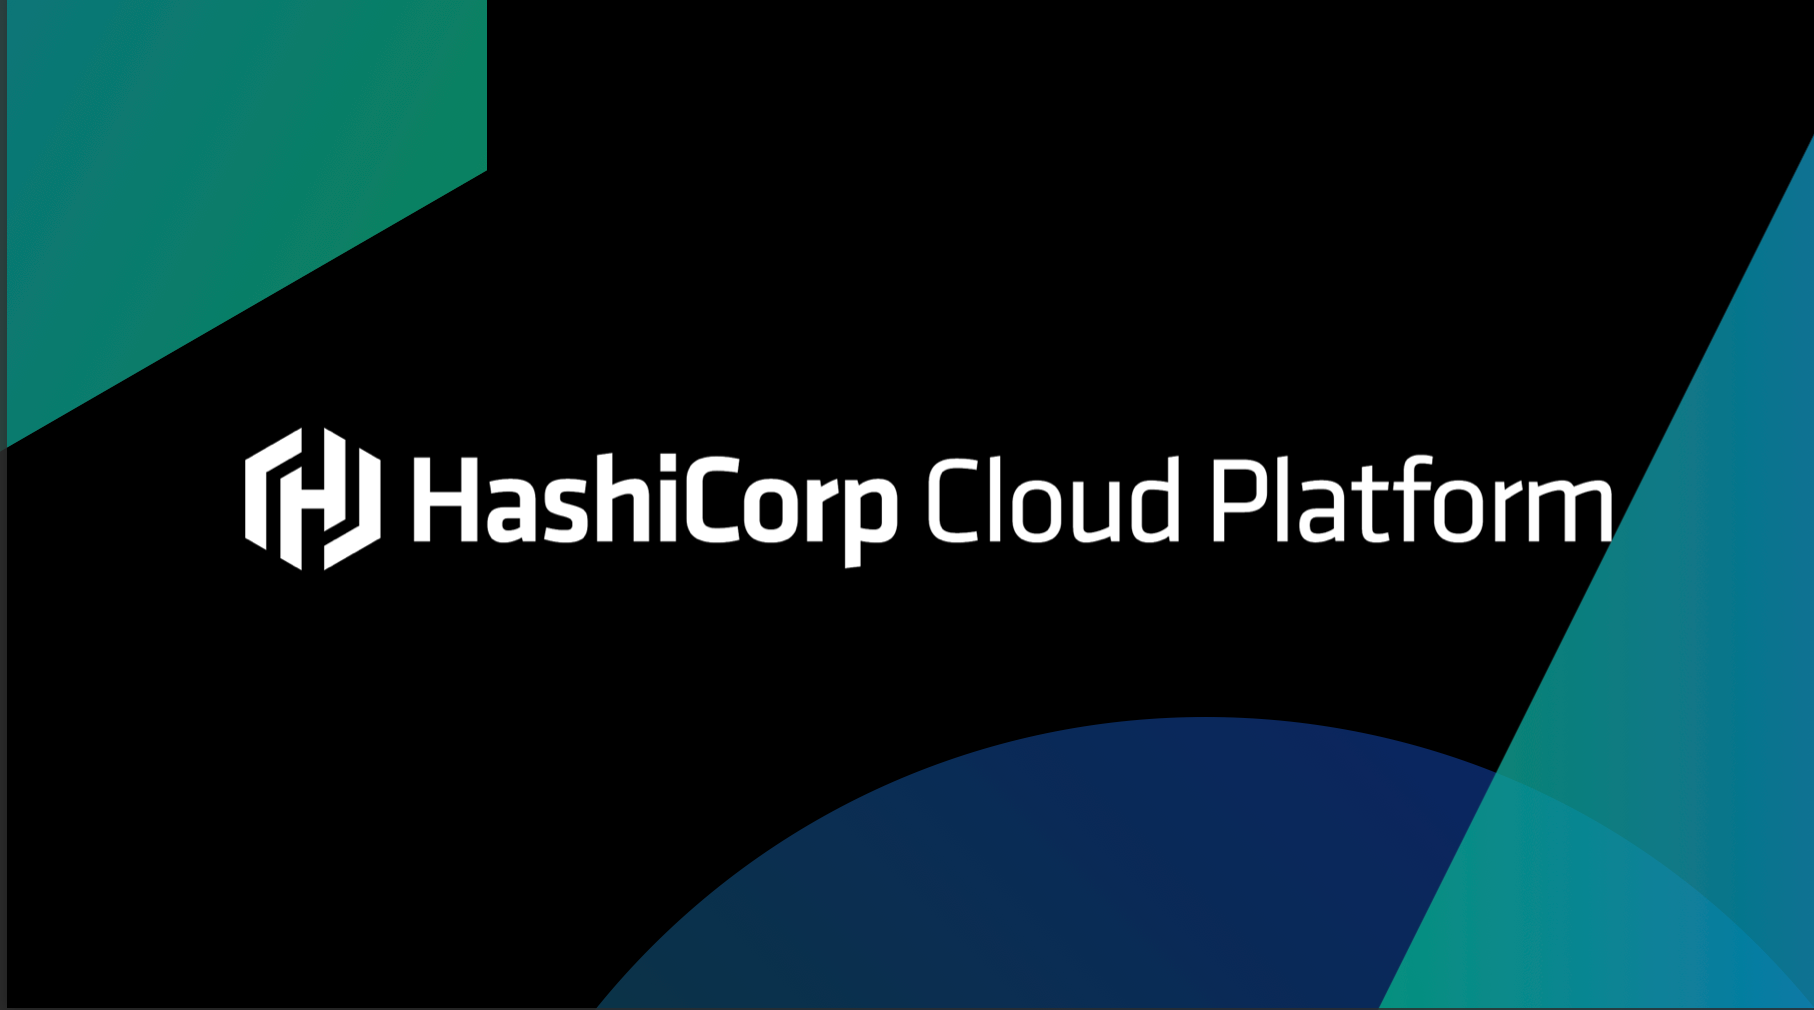 HashiConf Digital Keynote - HashiCorp Cloud Platform Announcement Image